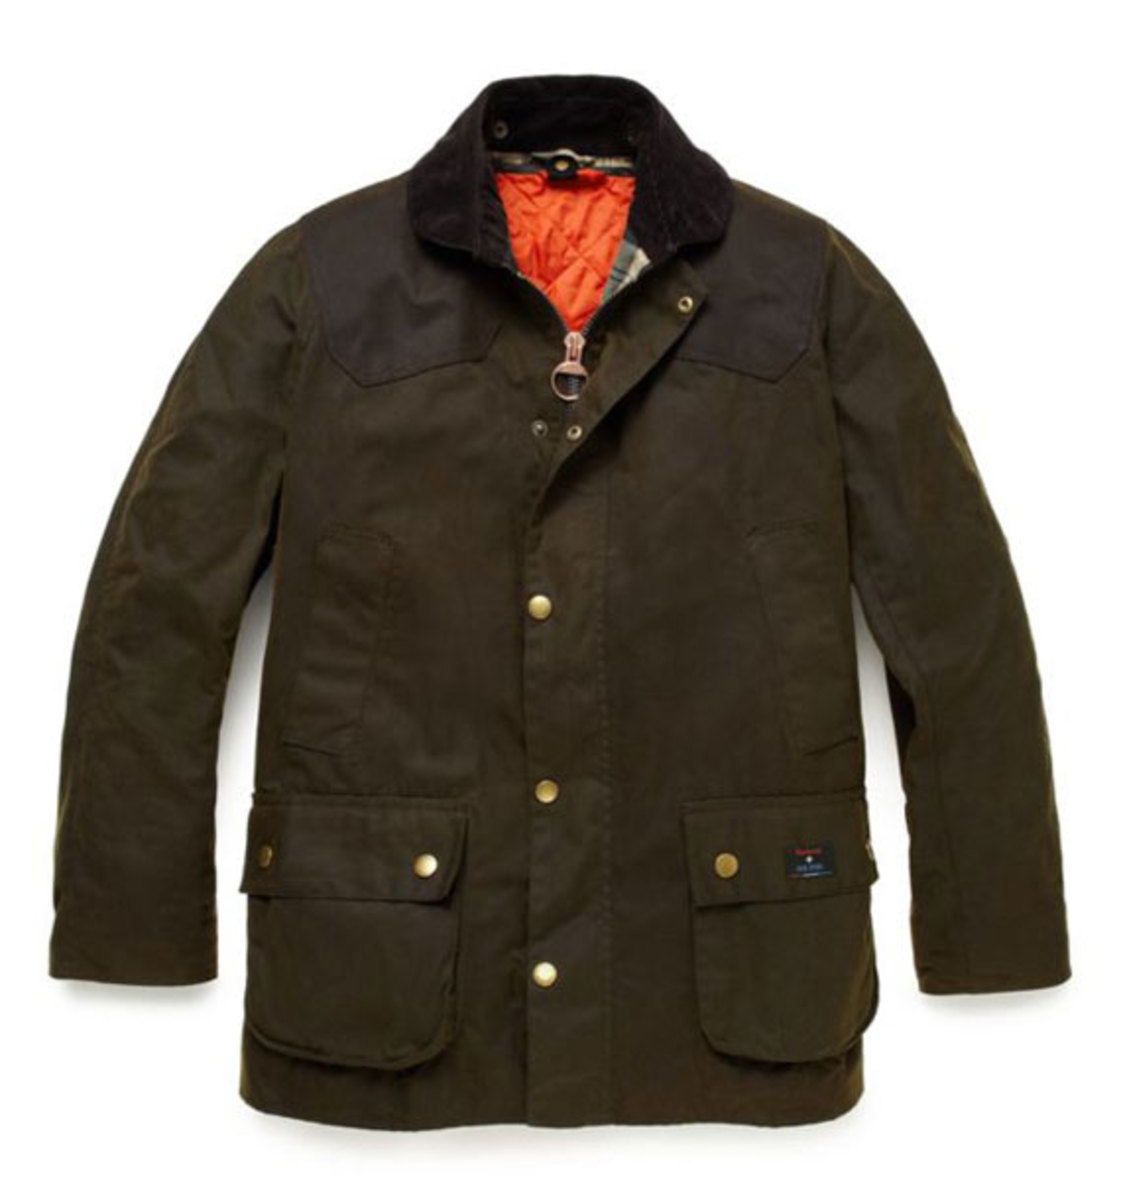 jack-spade-x-barbour-fall-winter-2012-capsule-collection-04